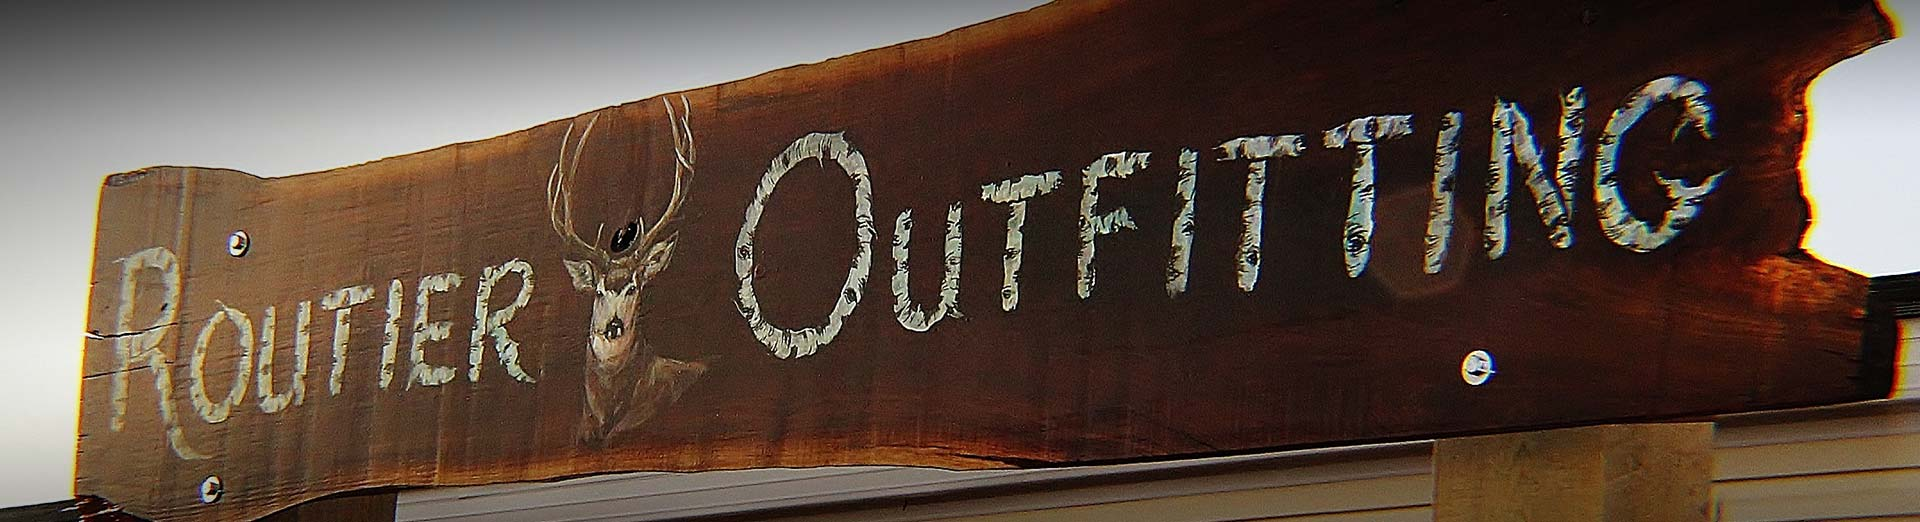 About Routier Outfitting